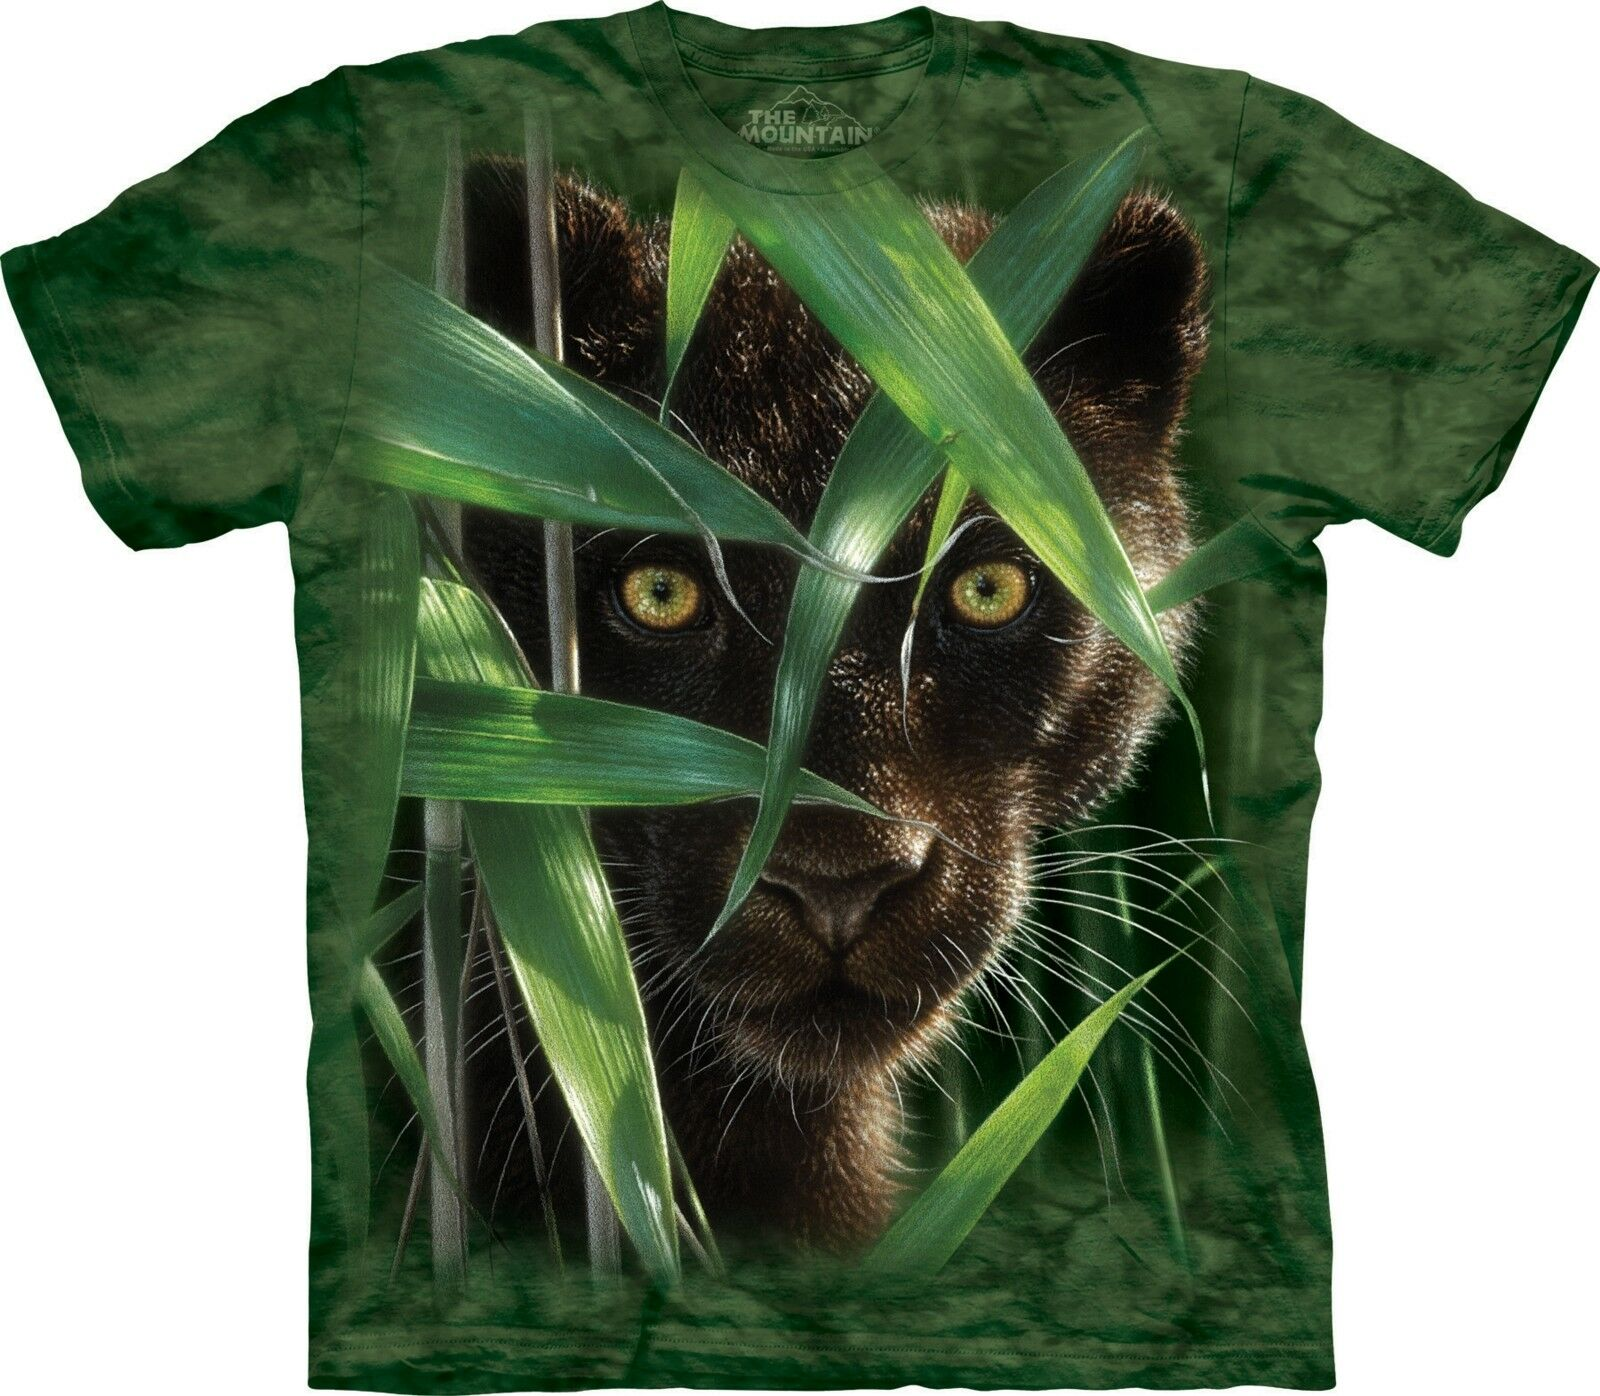 Wild Eyes Big Cats T Shirt Adult Unisex The Mountain